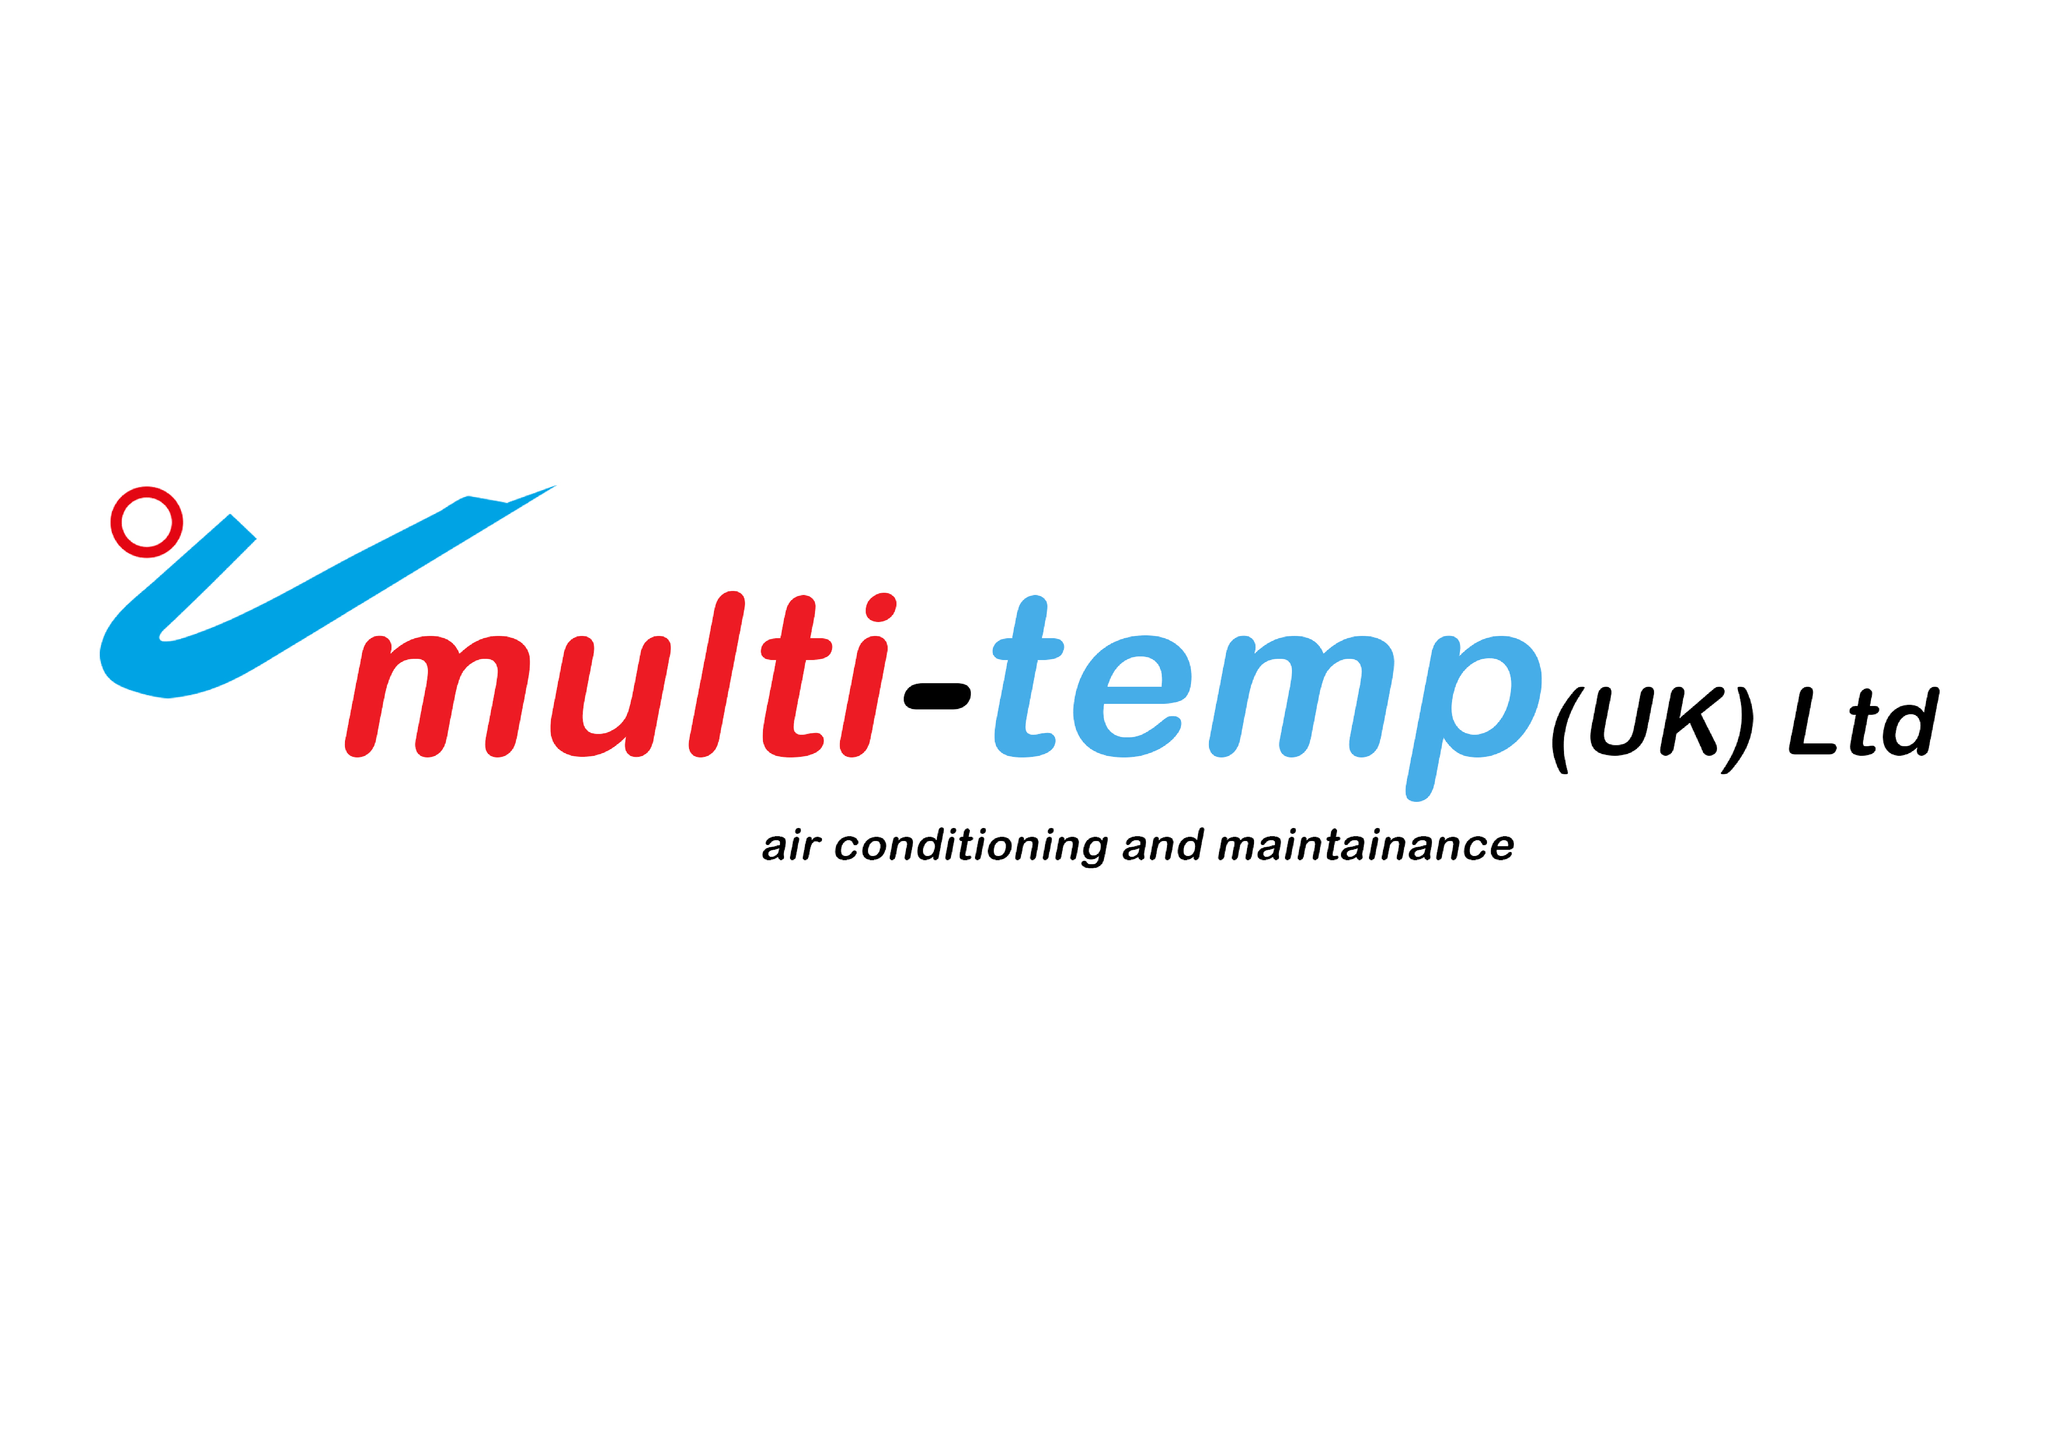 Multi-Temp (UK) Ltd